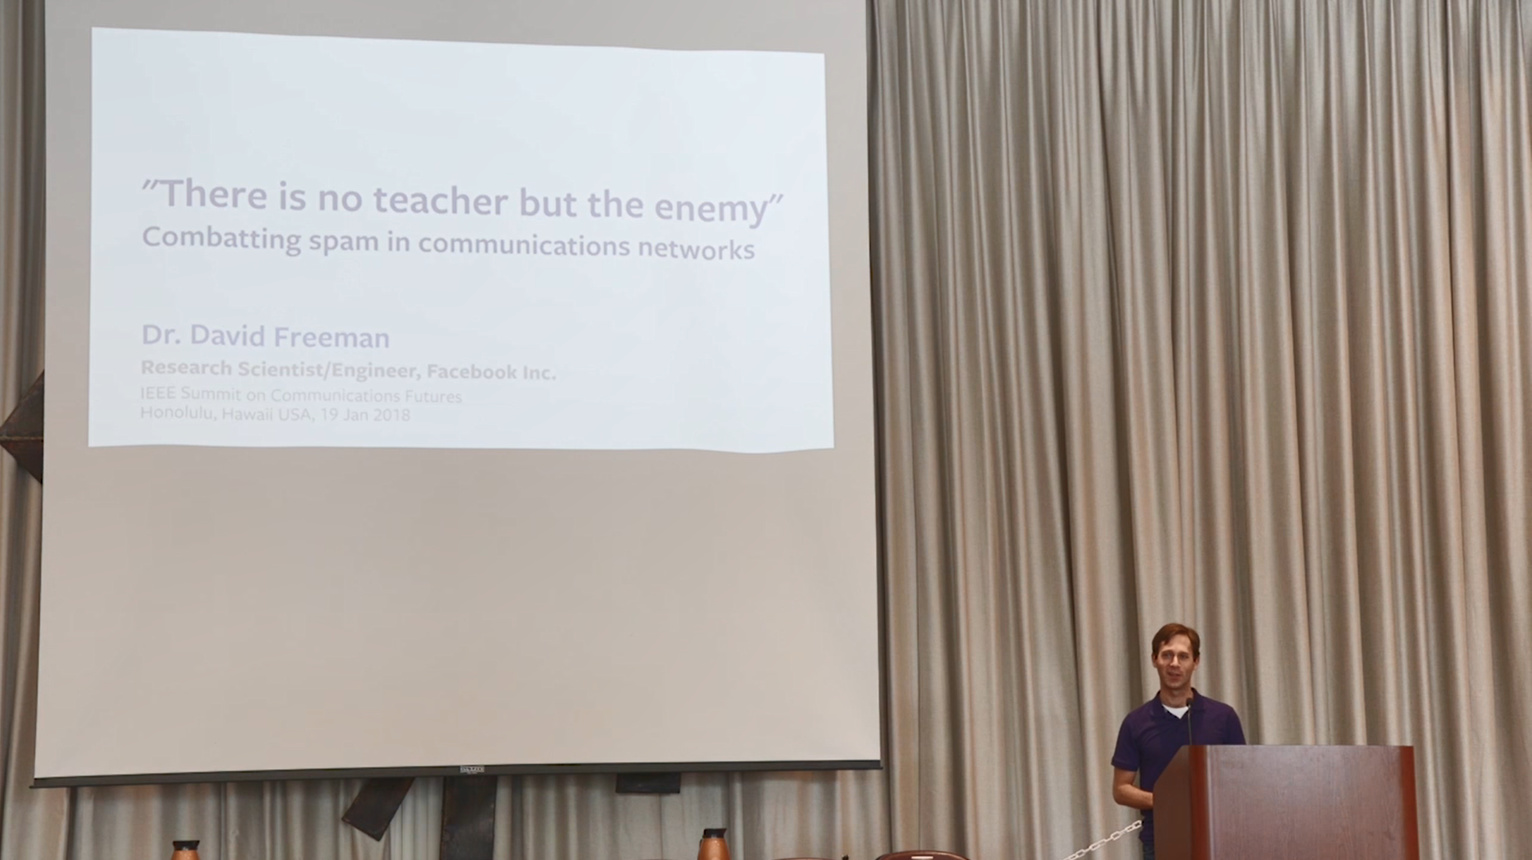 """There is no teacher but the enemy"" Combating spam in communications networks"